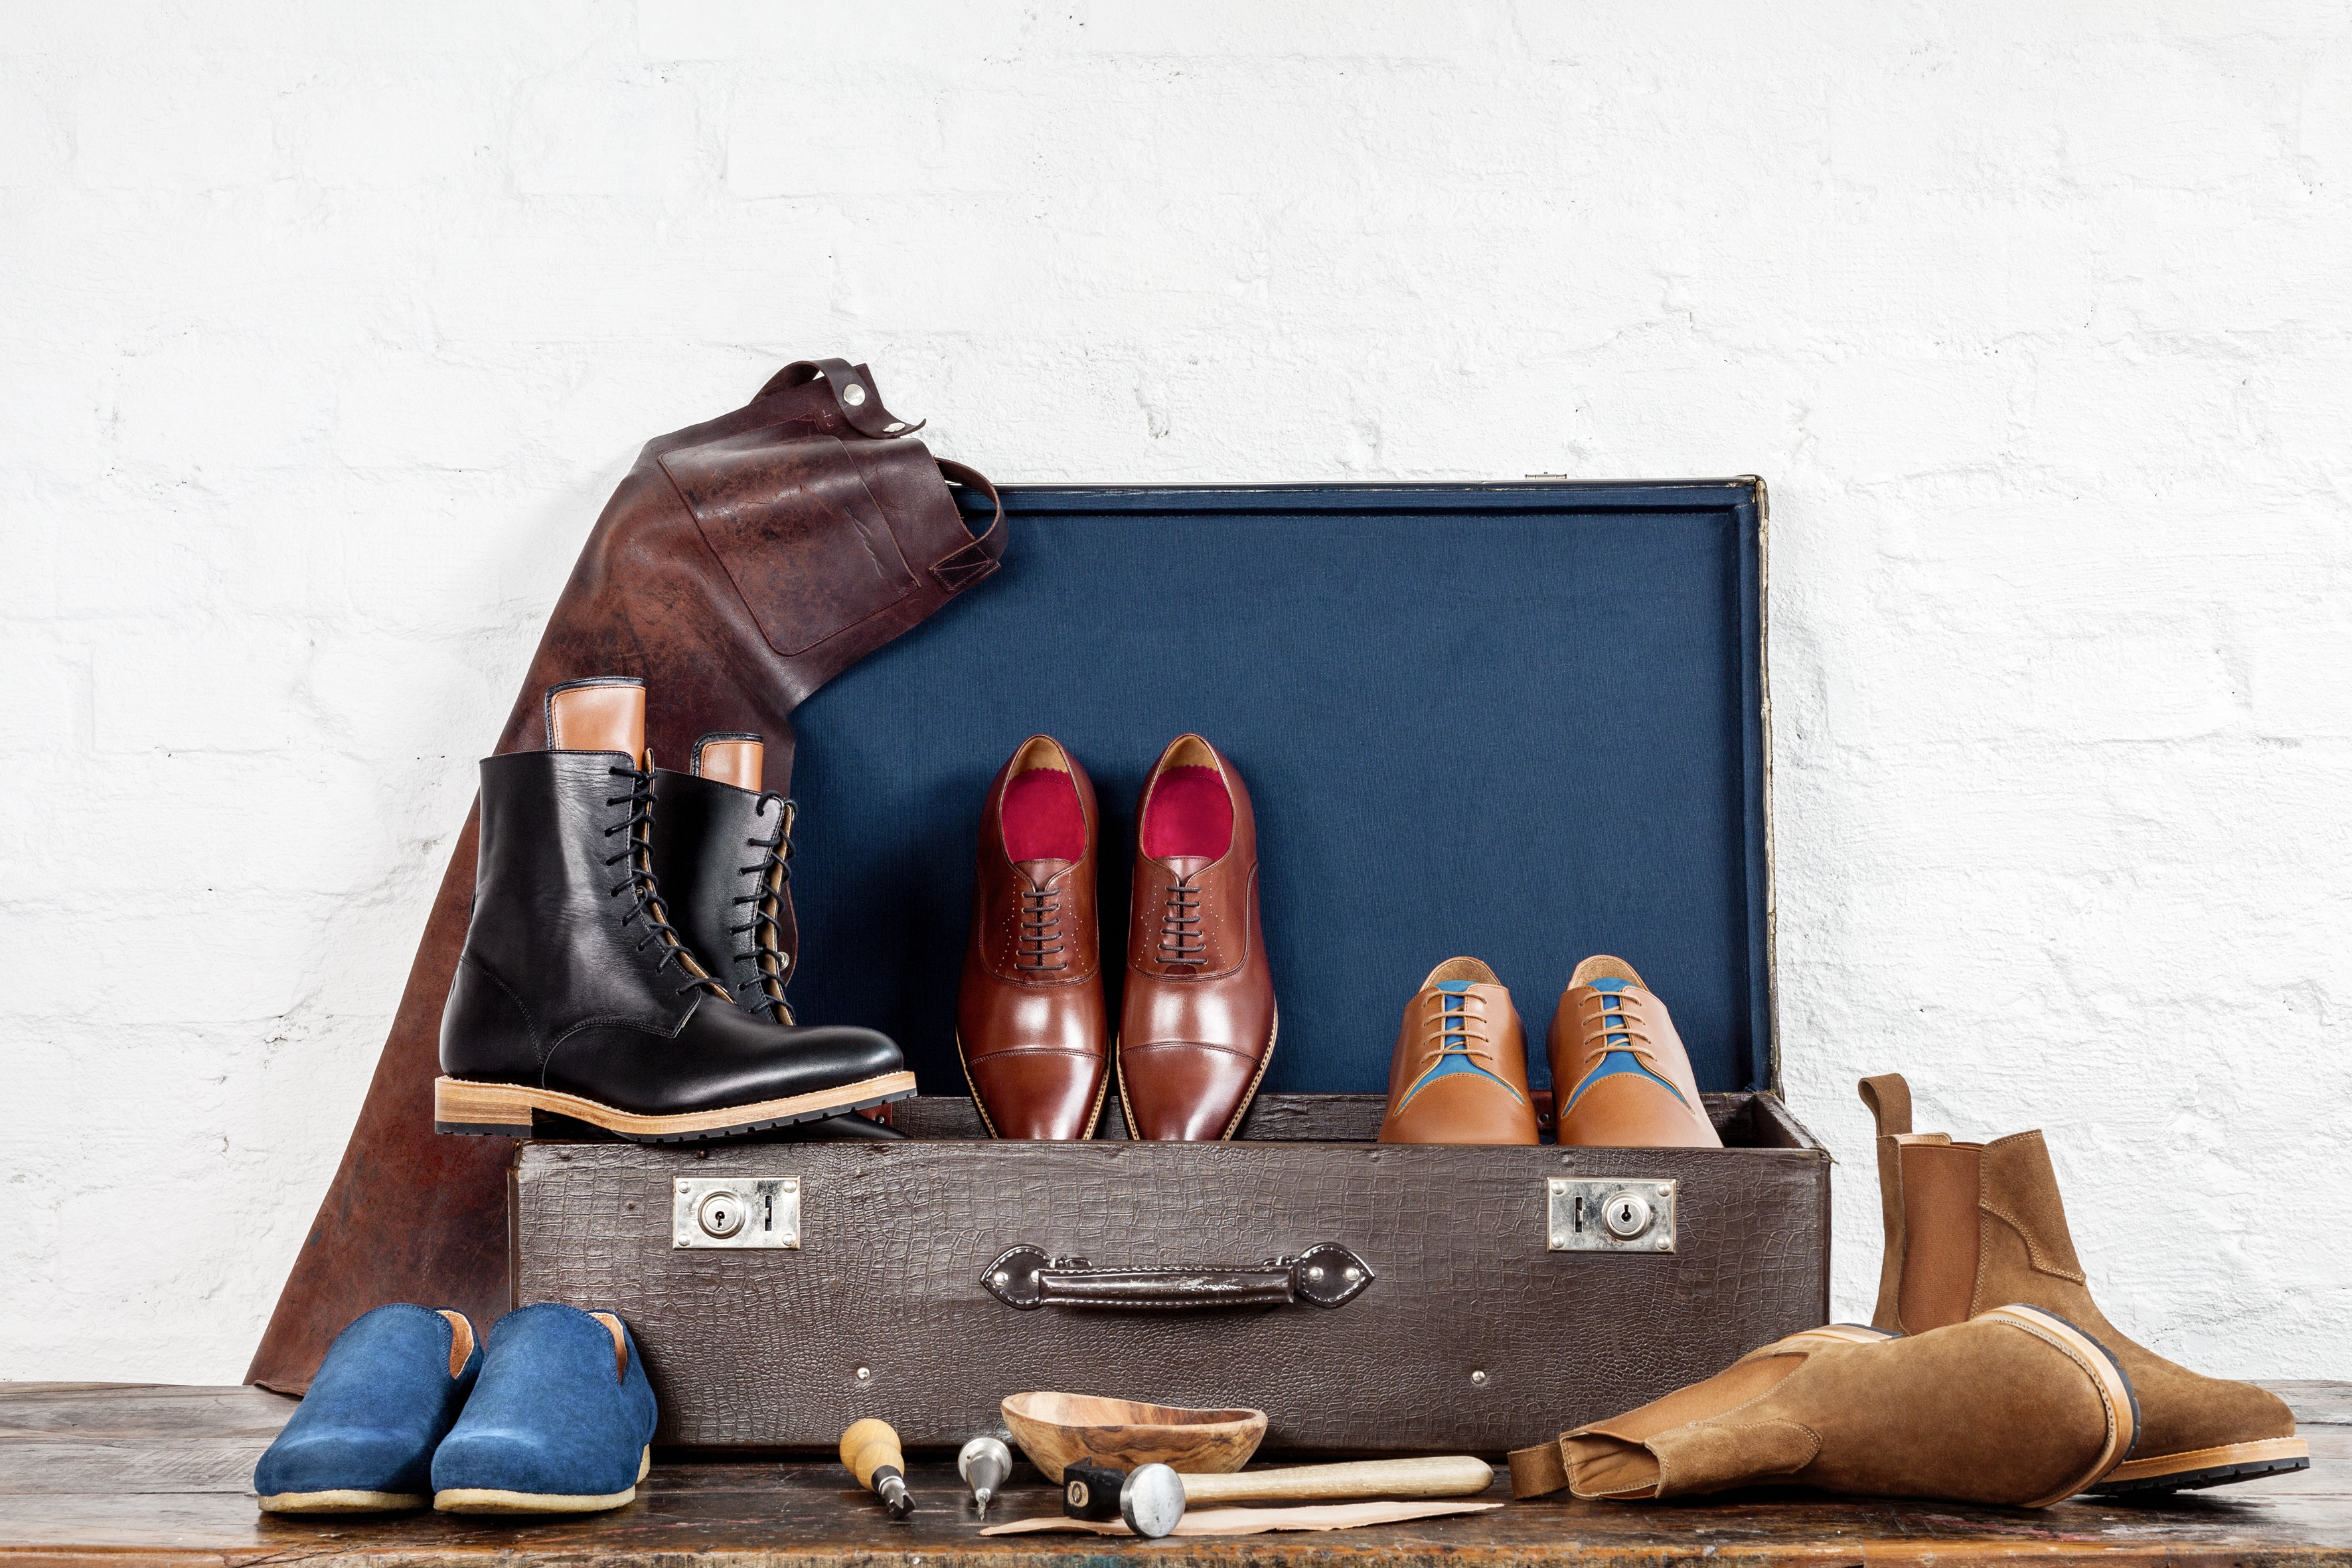 Saint Vacant's product line consist of five essential models: slippers, lace-up boots, dress shoes, casual shoes and Chelsea boots. The only five a gentleman needs.